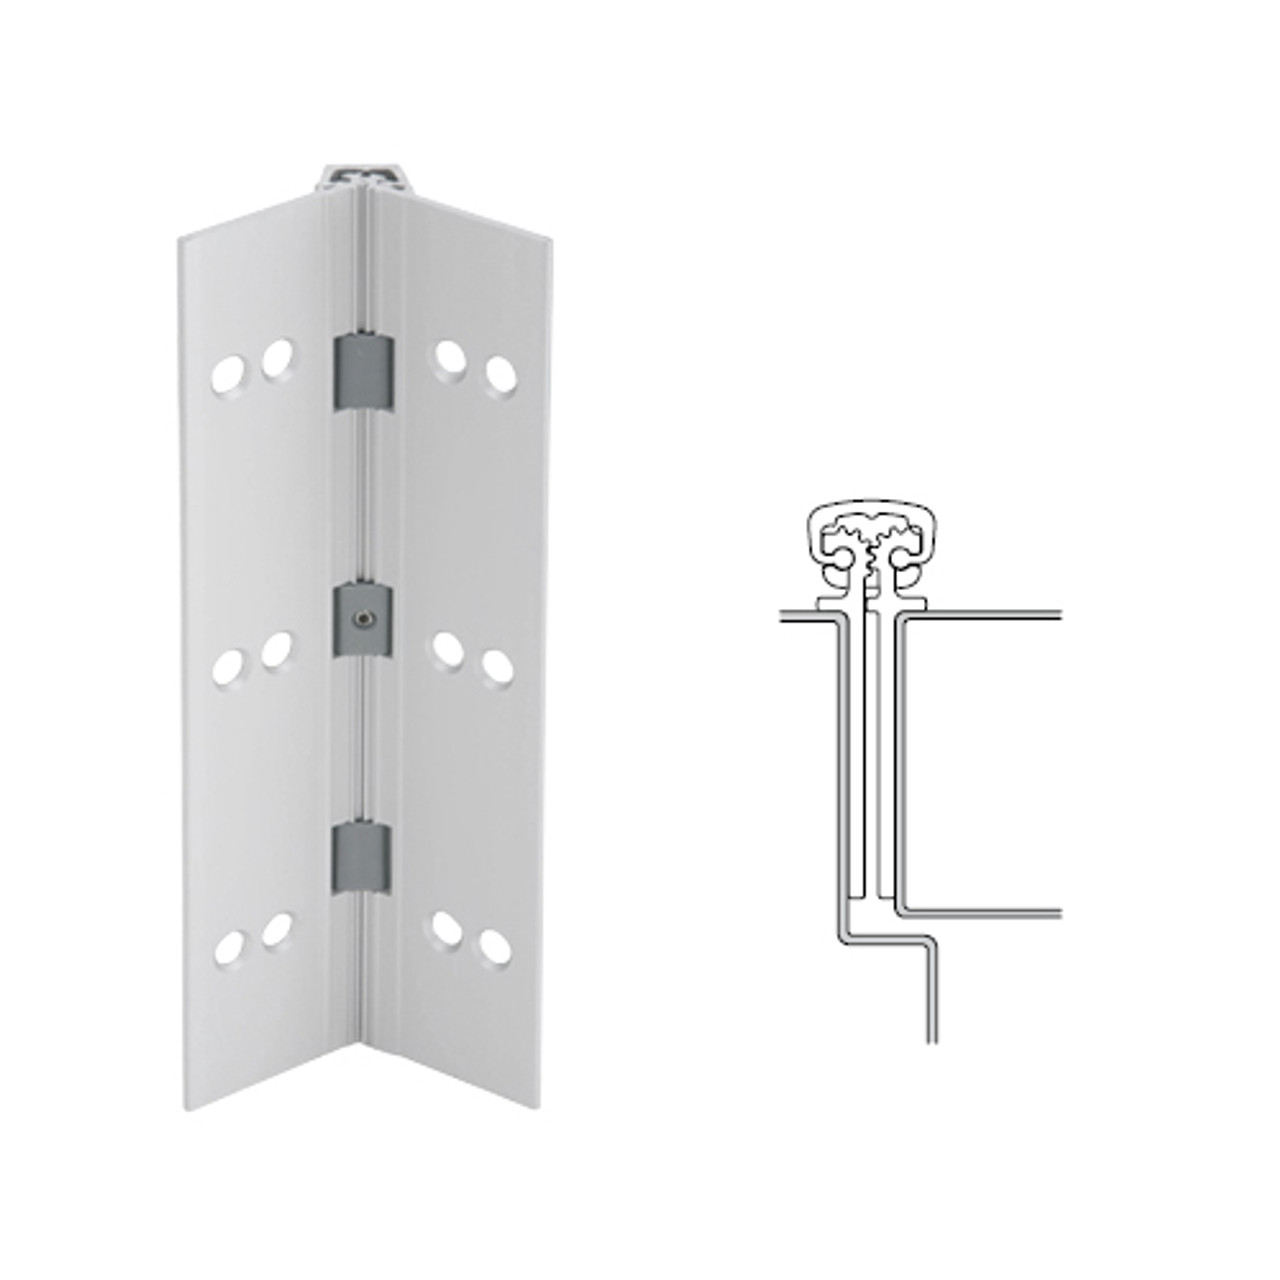 027XY-US28-85-TF IVES Full Mortise Continuous Geared Hinges with Thread Forming Screws in Satin Aluminum